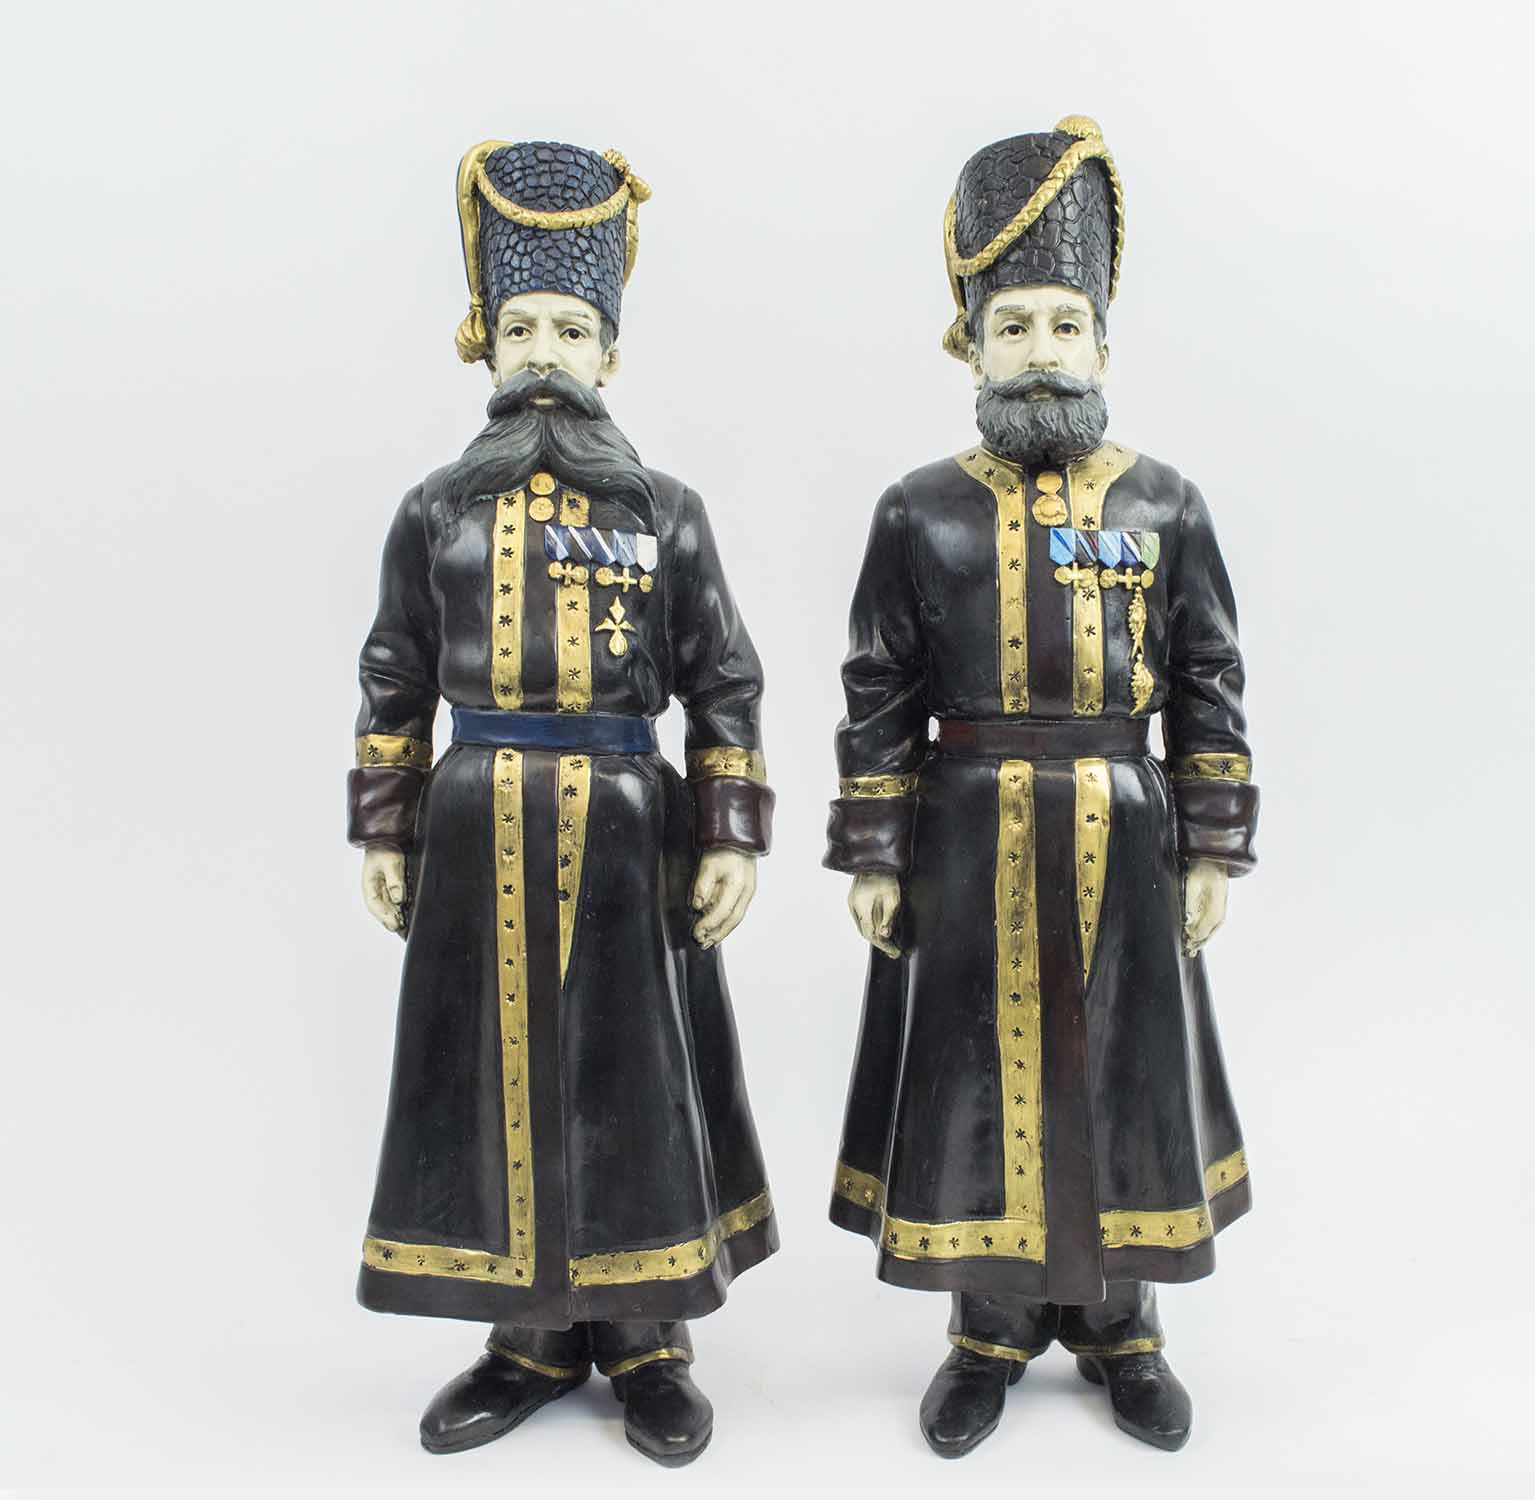 FABERGE MANNER BRONZE COSSACKS, a pair, Pustynnikov chamber Cossack 1894, - Image 2 of 6